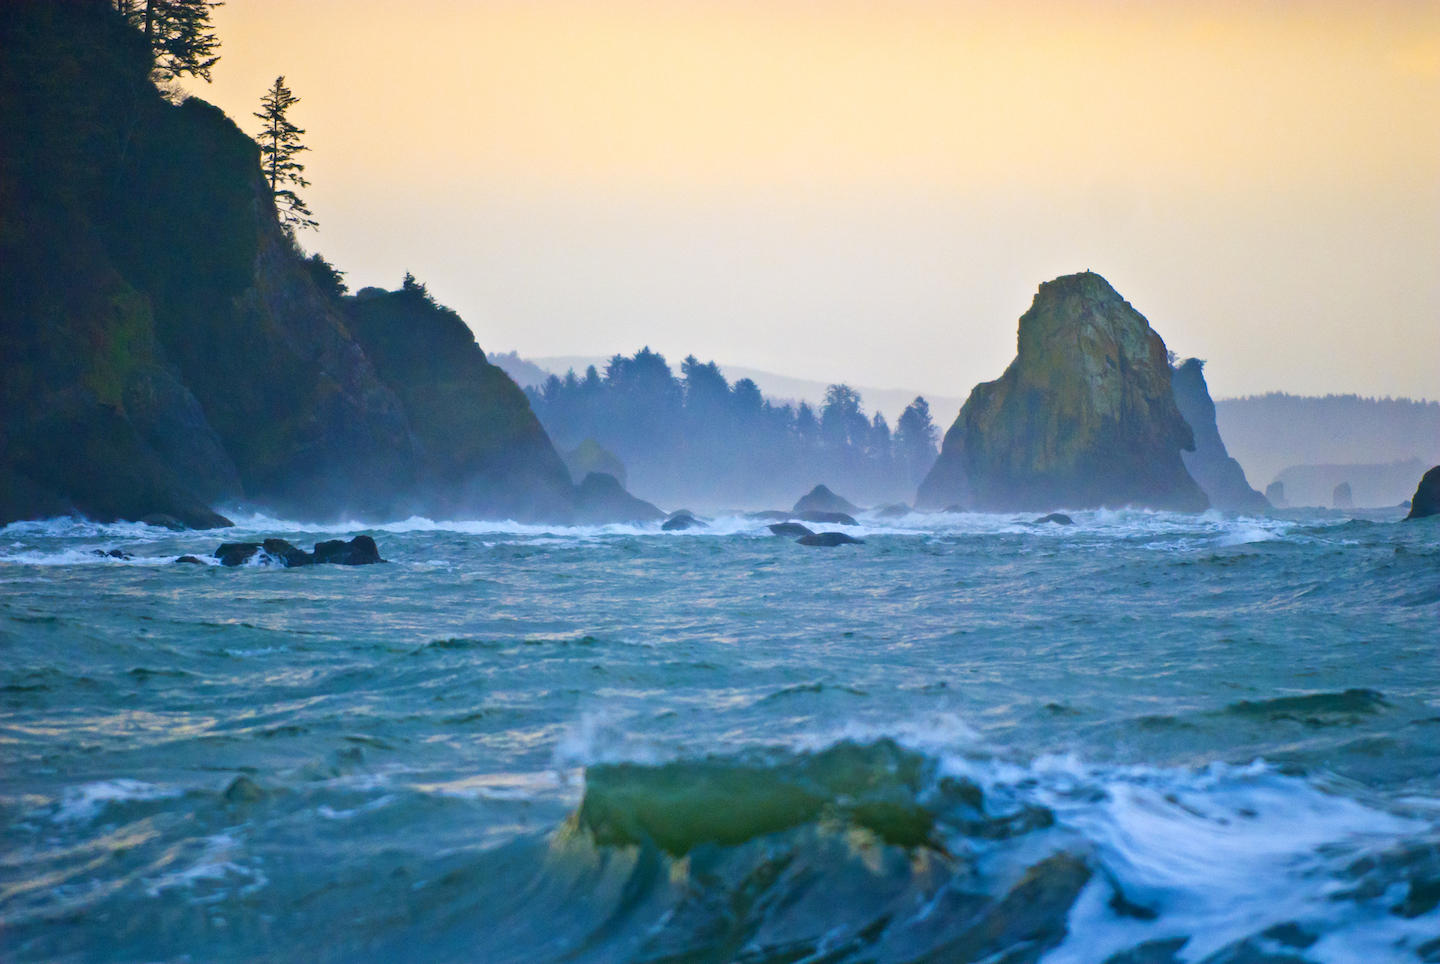 A new study has found evidence off the coast of Washington state that the area is primed for a large earthquake.